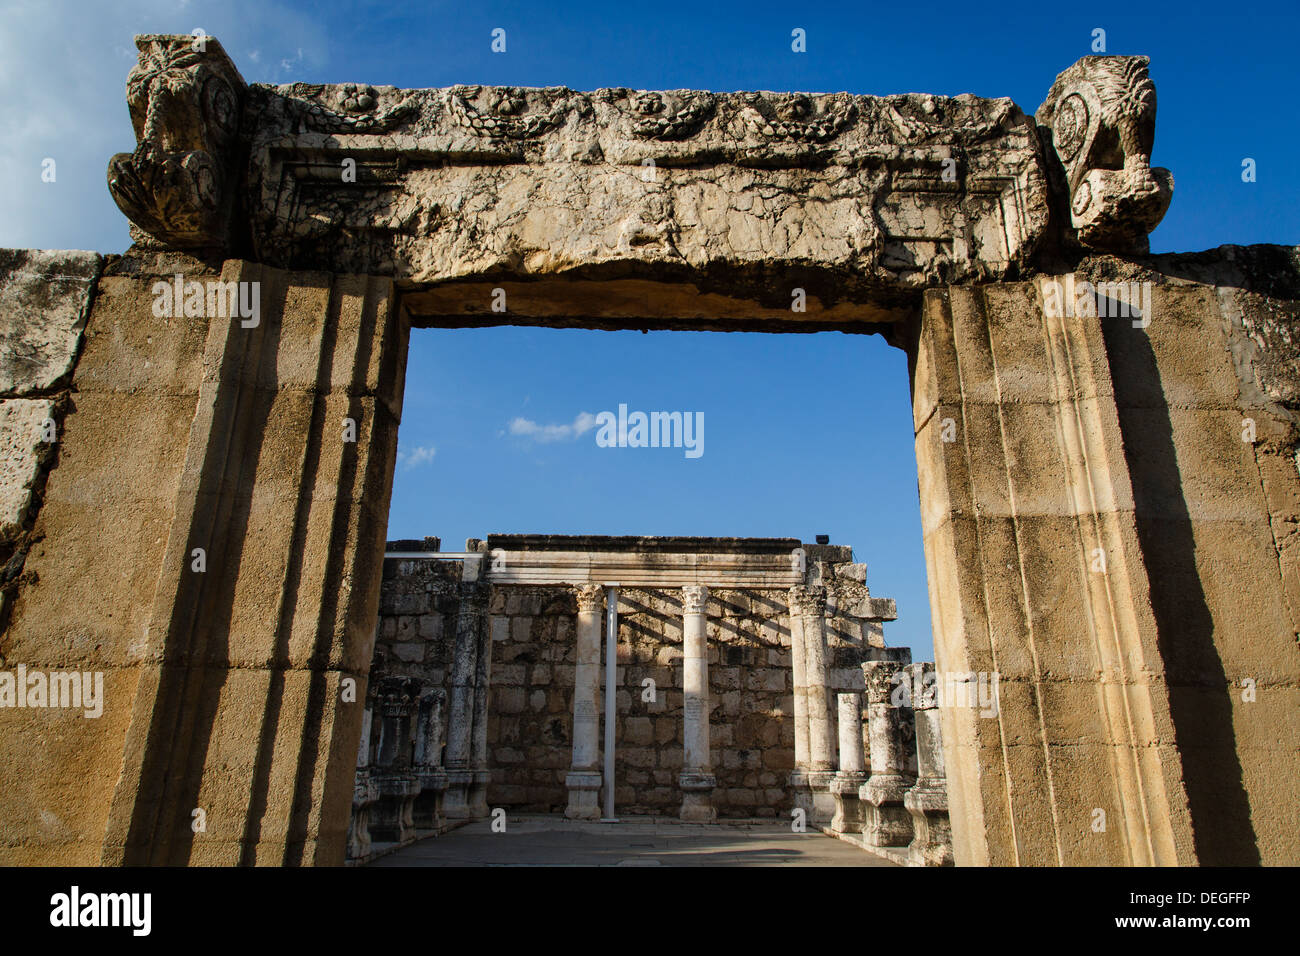 Ruins of the old Synagogue in Capernaum by the Sea of Galilee, Israel, Middle East Stock Photo